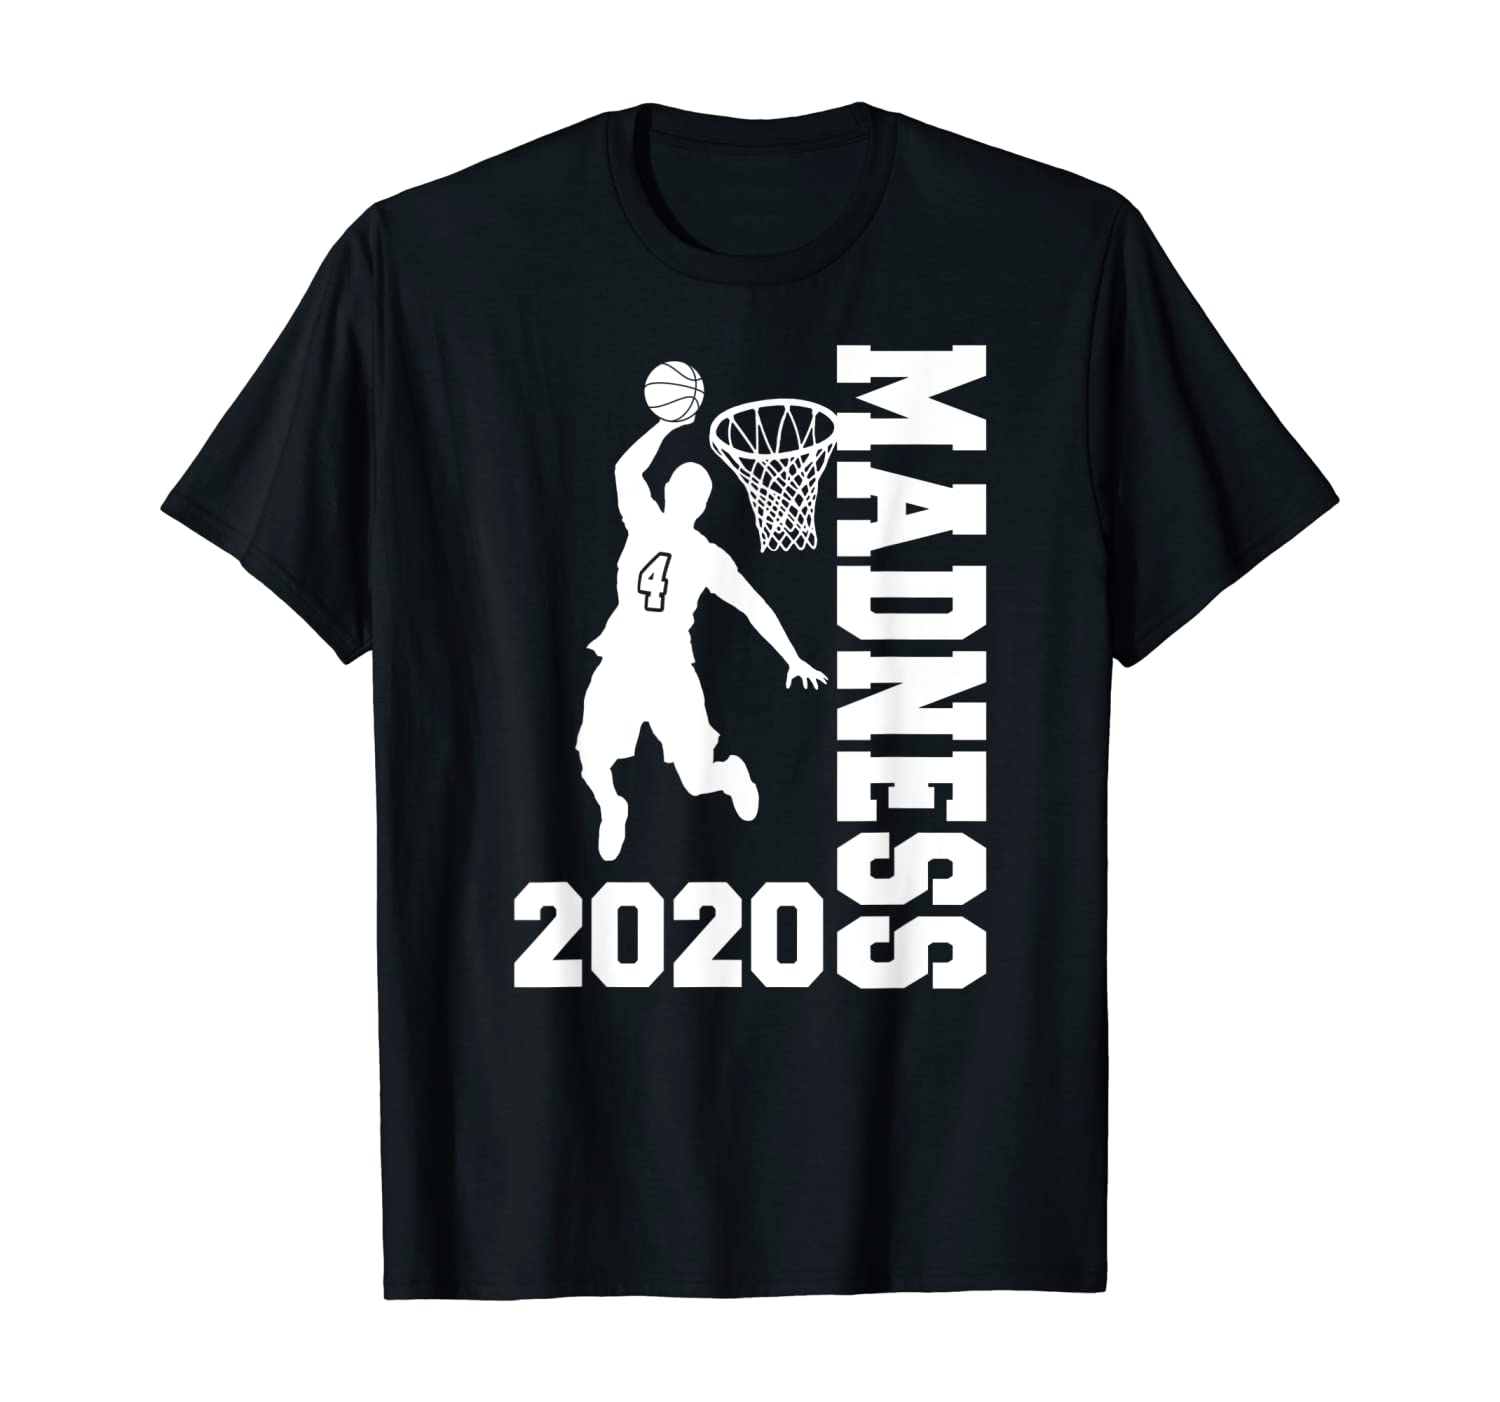 MADNESS 2020 College Basketball Finals (Ver. 2W) T-Shirt